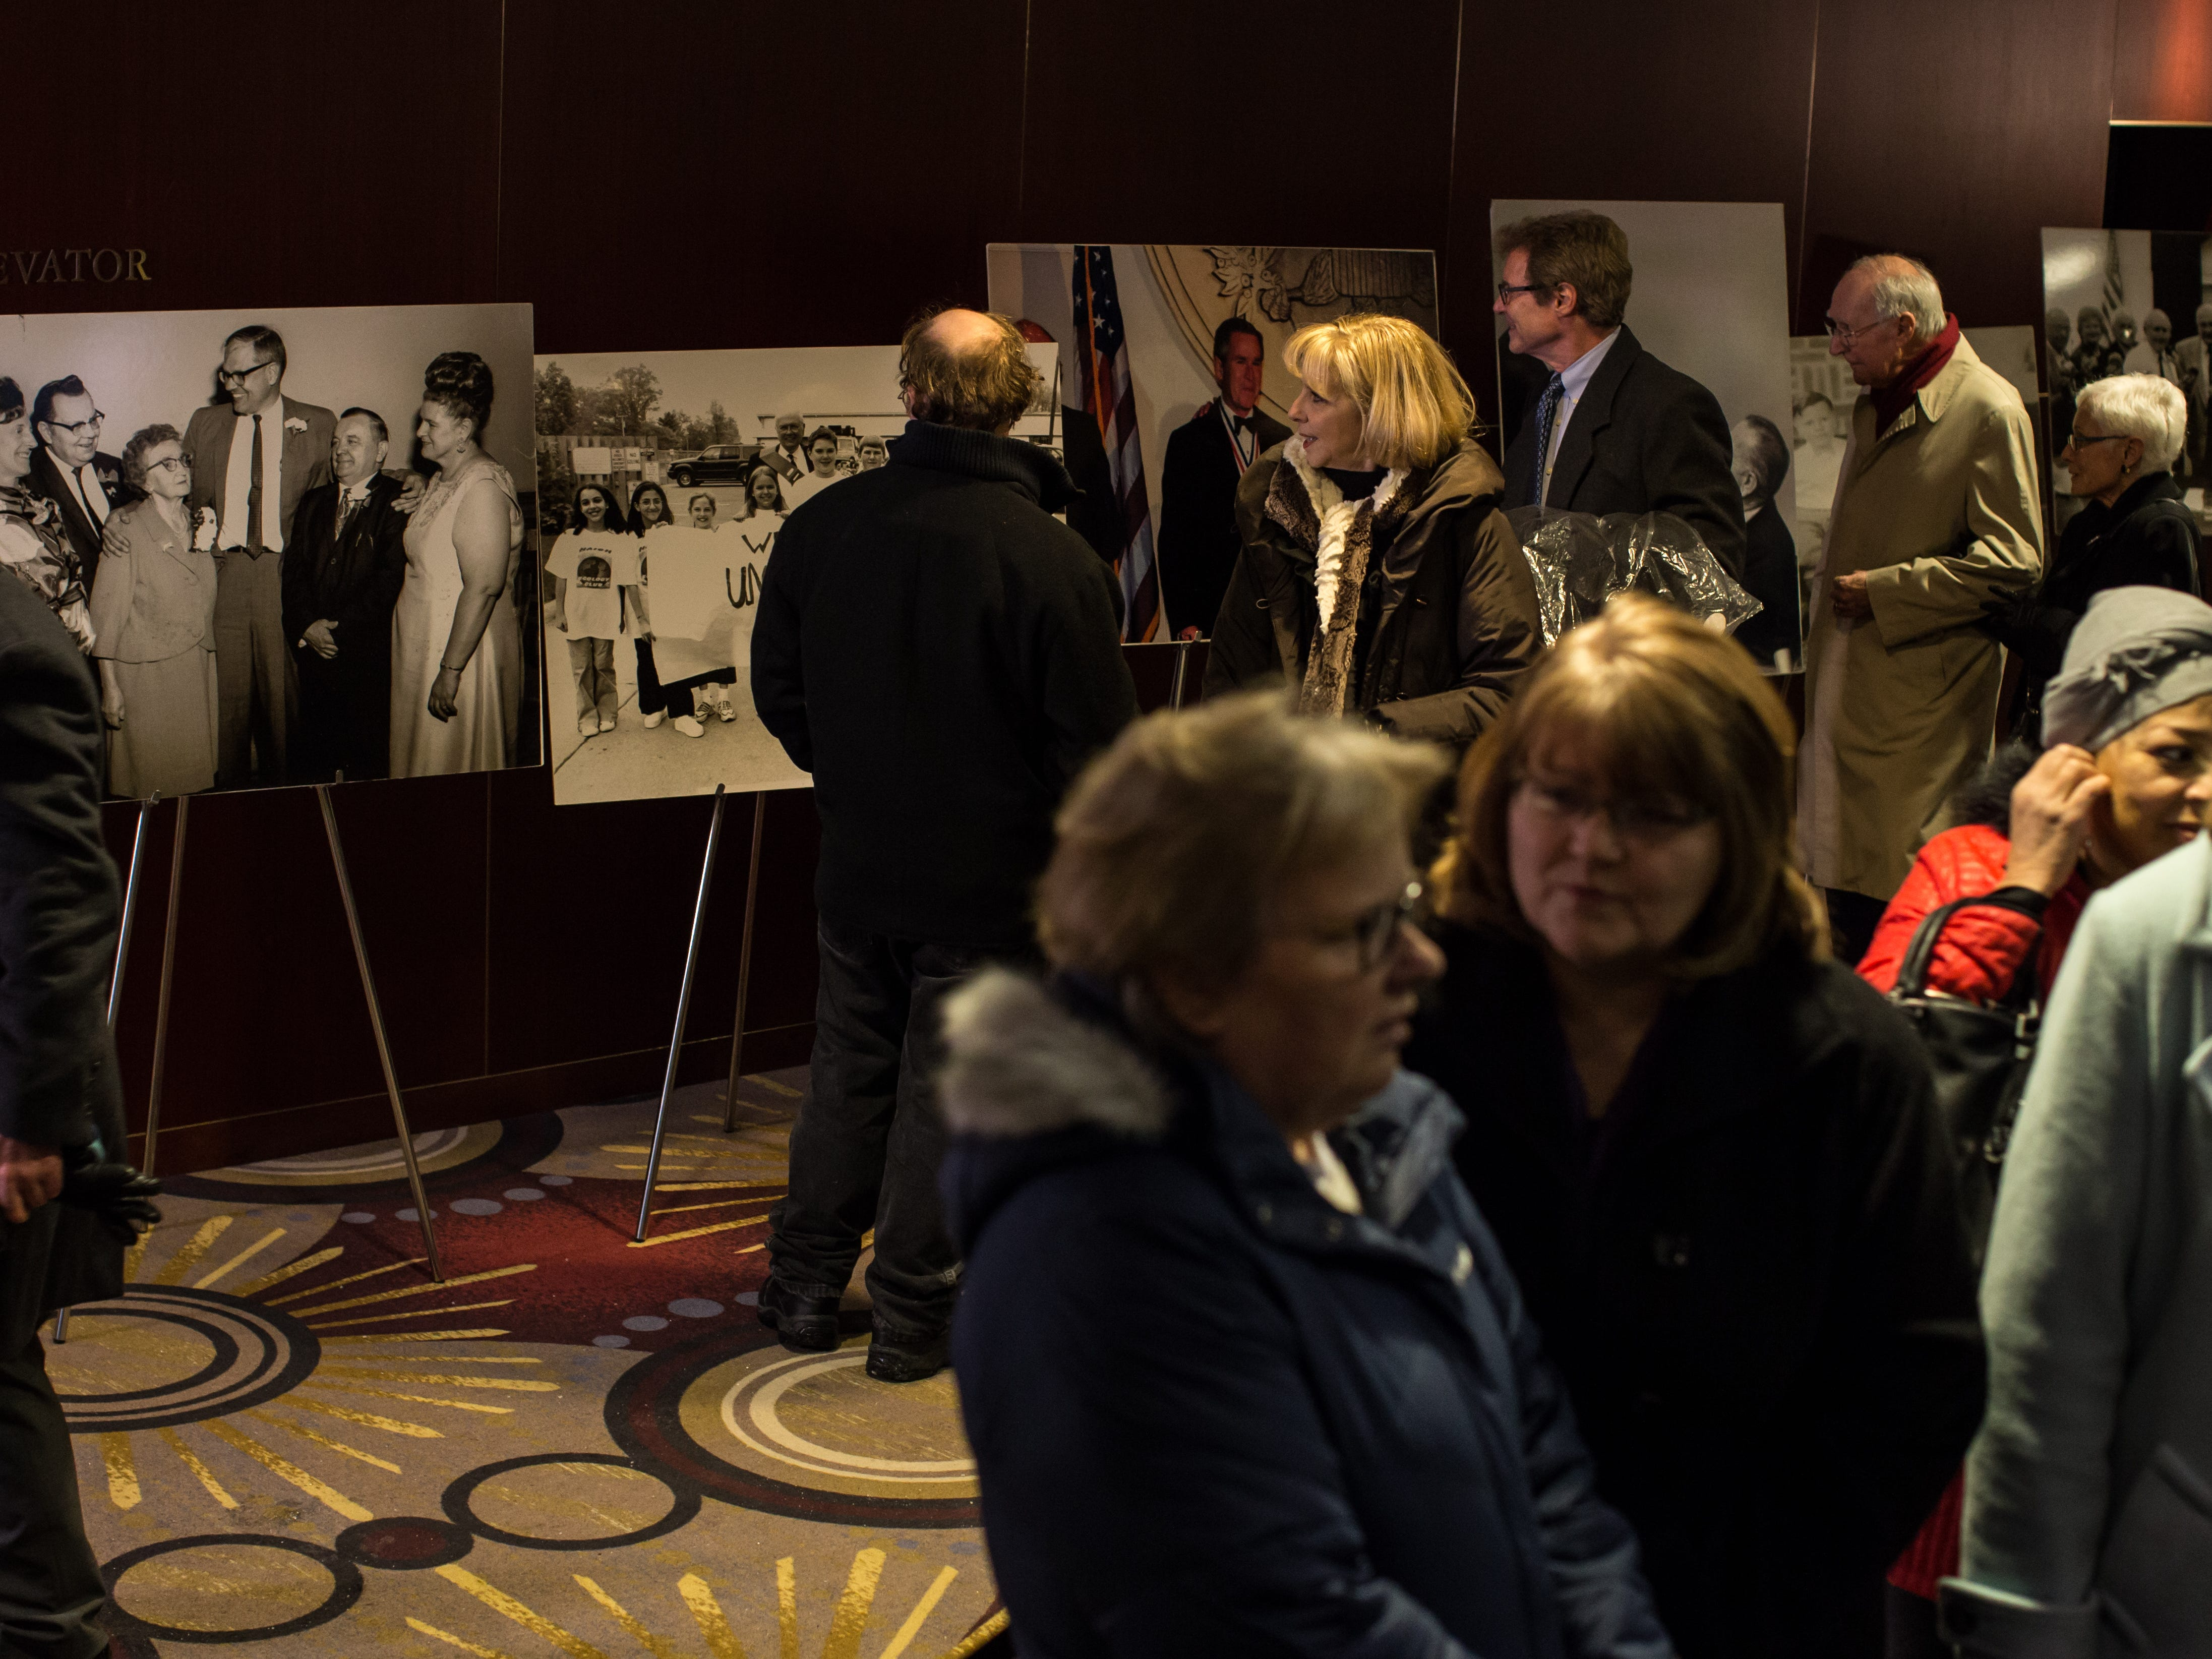 People look over old photos after paying their respects during the visitation for the former US Representative John D. Dingell at the Ford Community and Performing Arts Center in Dearborn on Monday, February 11, 2019.